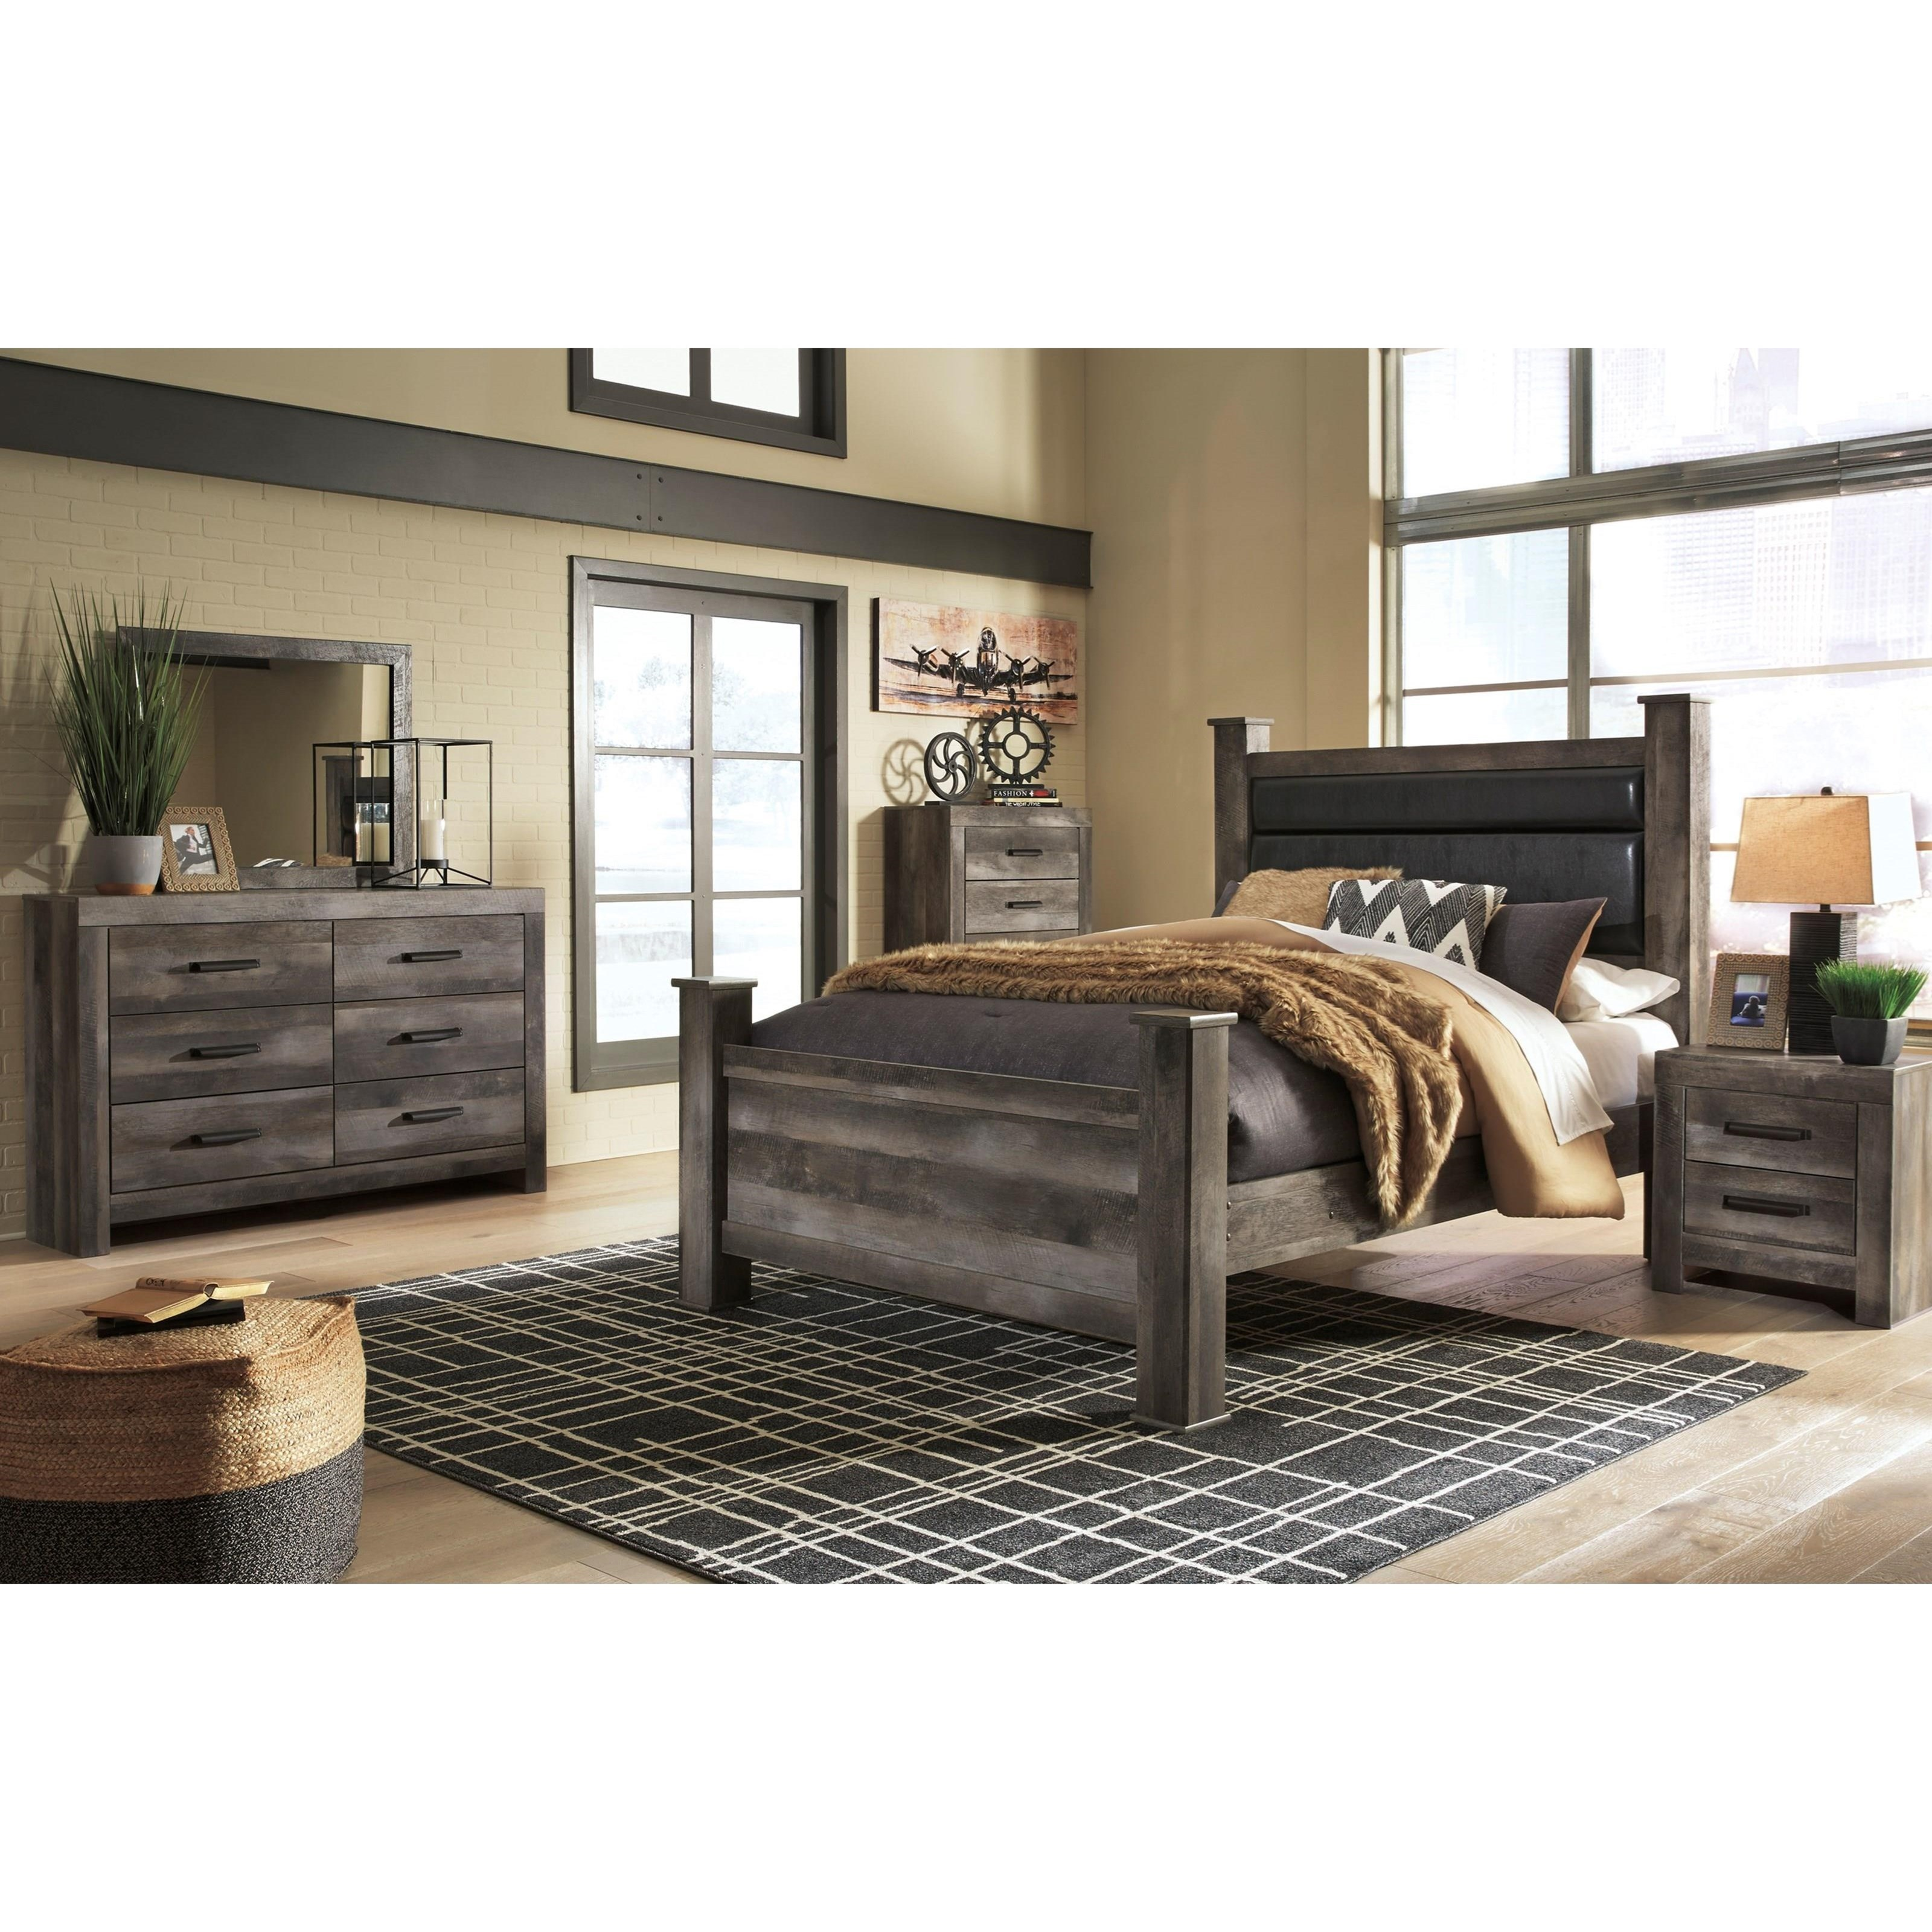 Signature Design By Ashley Wynnlow B440 46 5 Drawer Plank Effect Chest Household Furniture